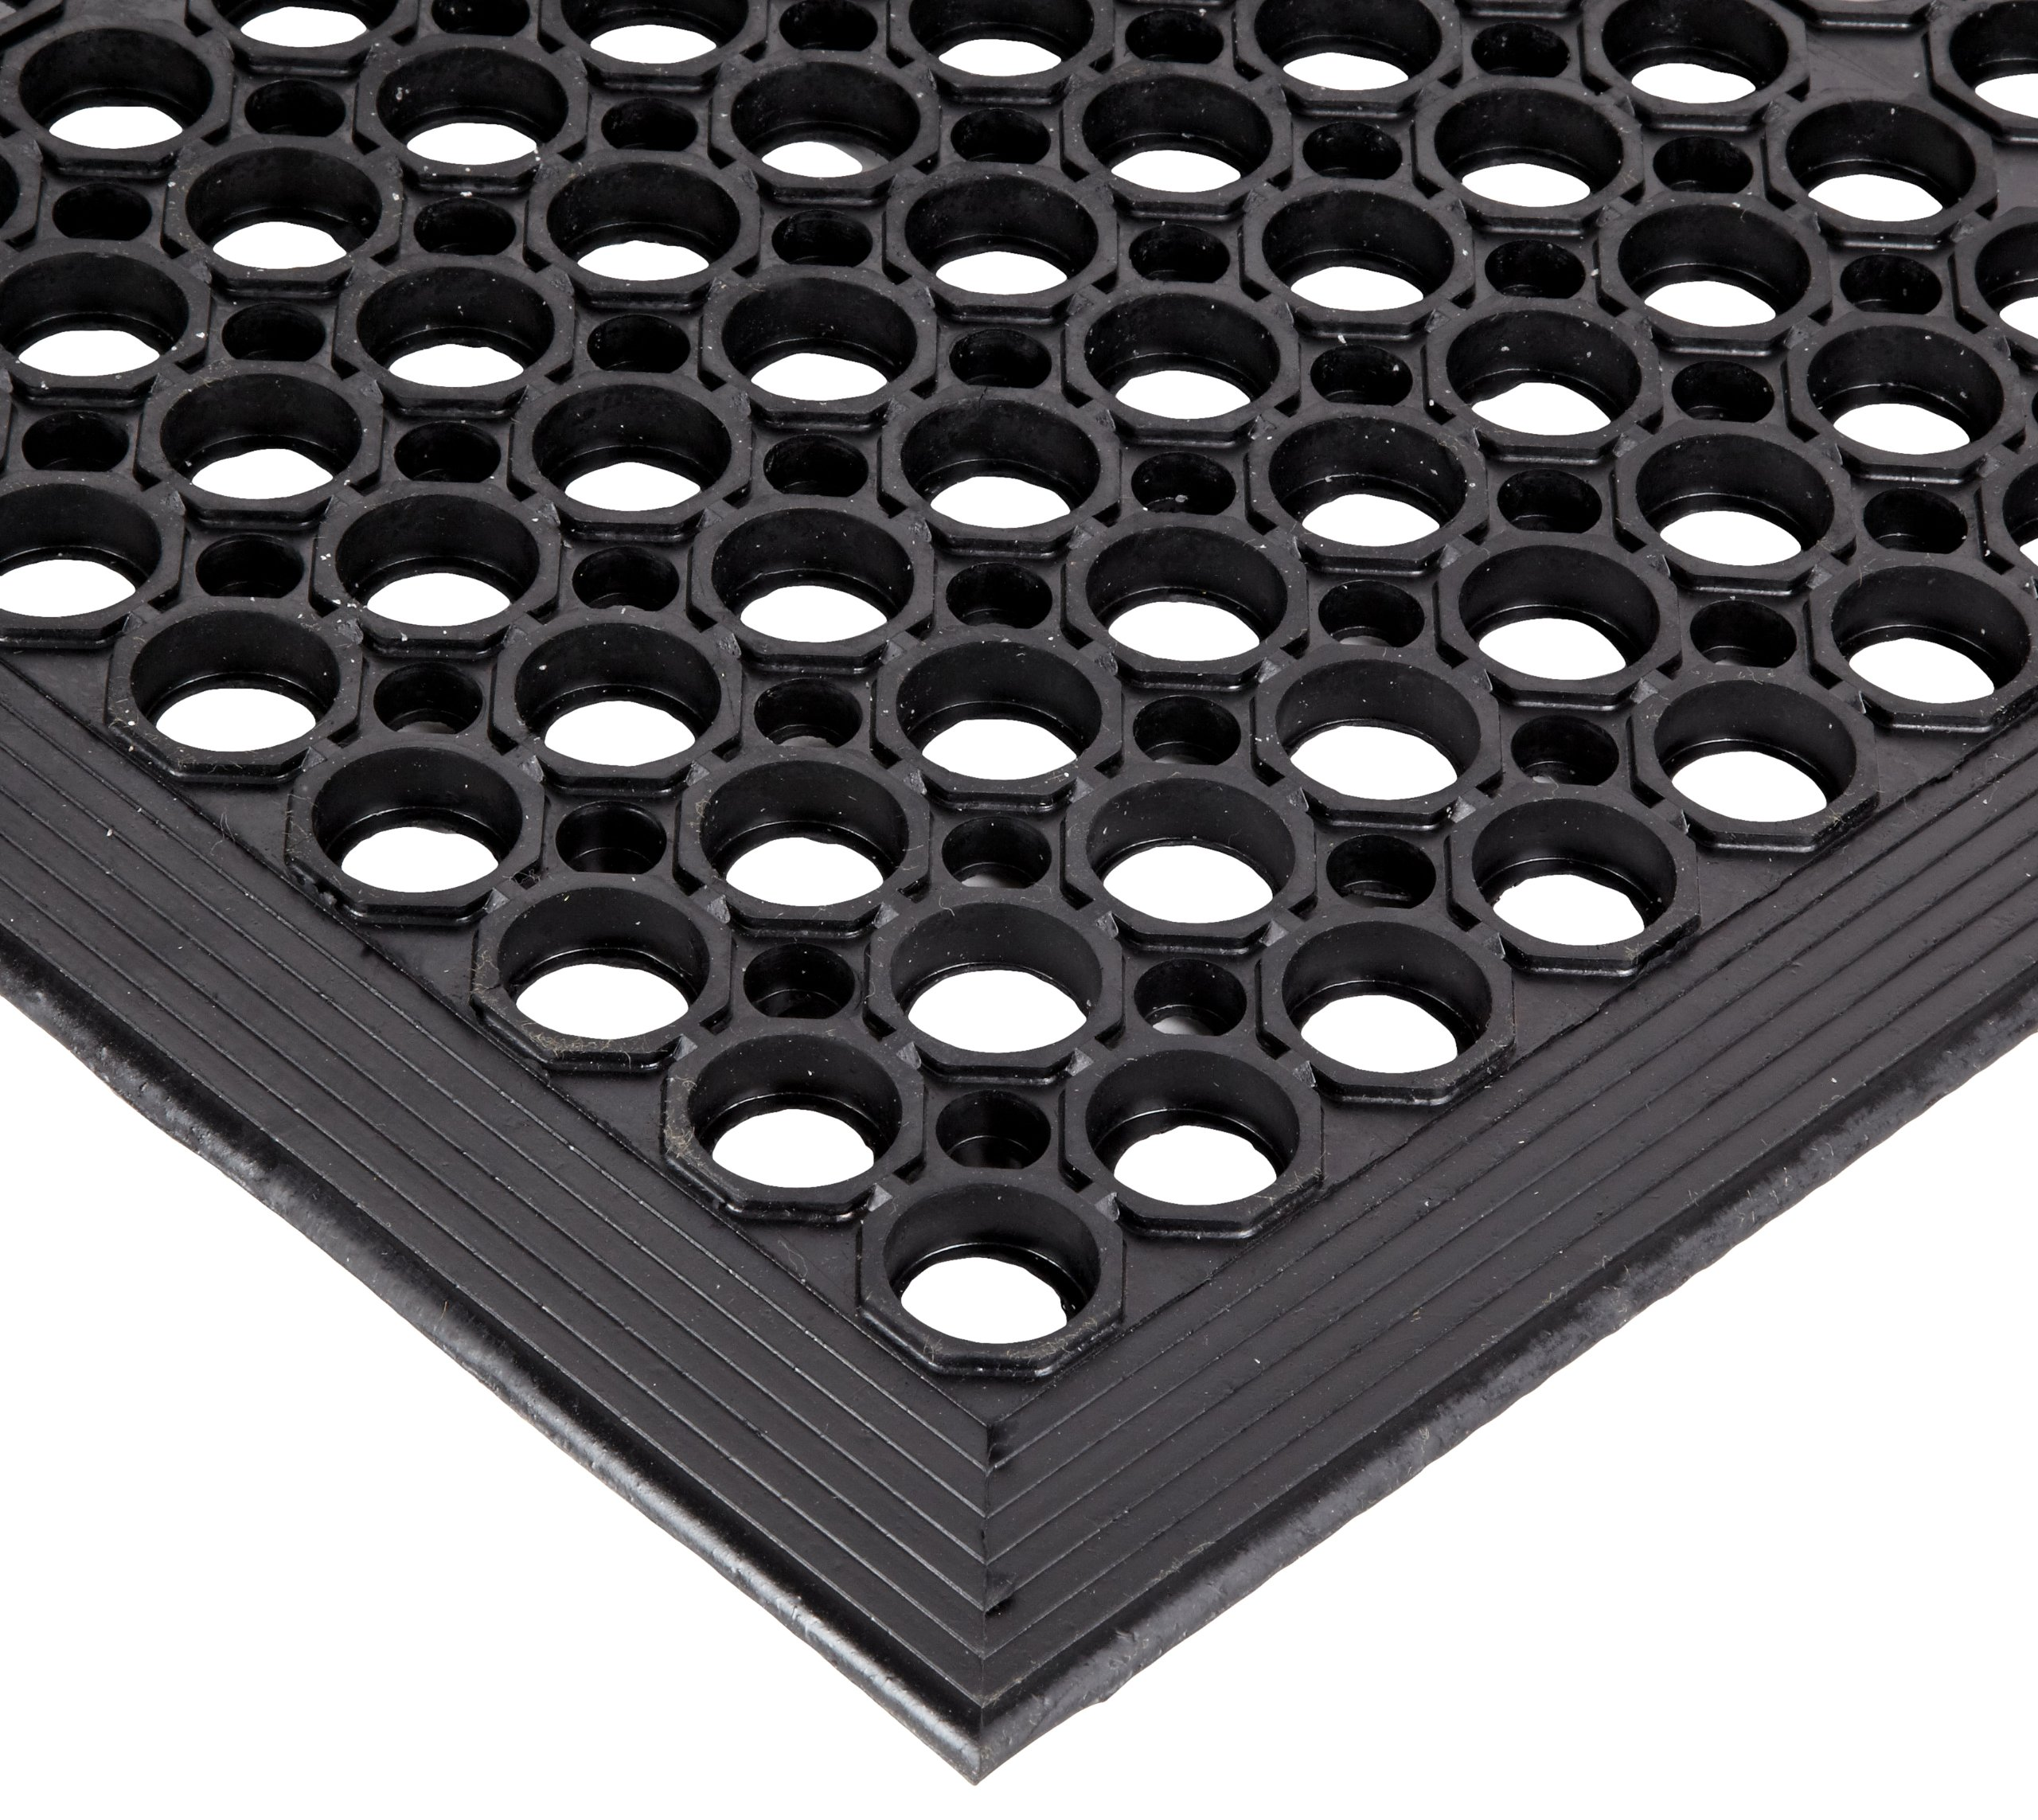 NoTrax Rubber 562 Sanitop Anti-Fatigue Drainage Mat, for Wet Areas, 3' Width x 5' Length x 1/2'' Thickness, Black by NoTrax Floor Matting